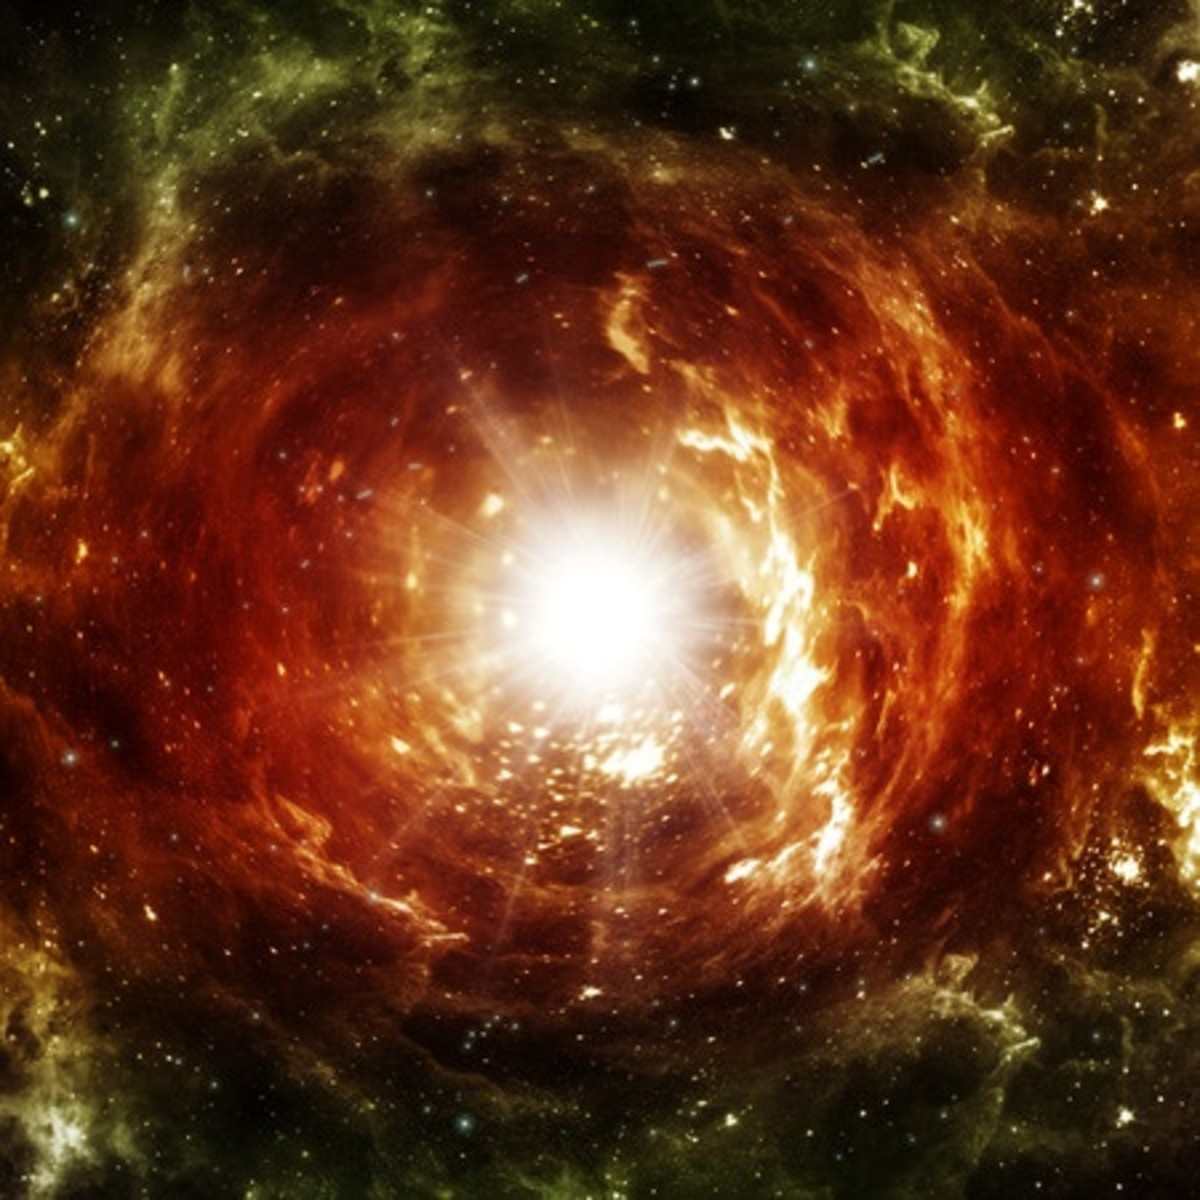 Will the black hole reveal its mysteries or is this the end of Captain Arden's cosmic journey?